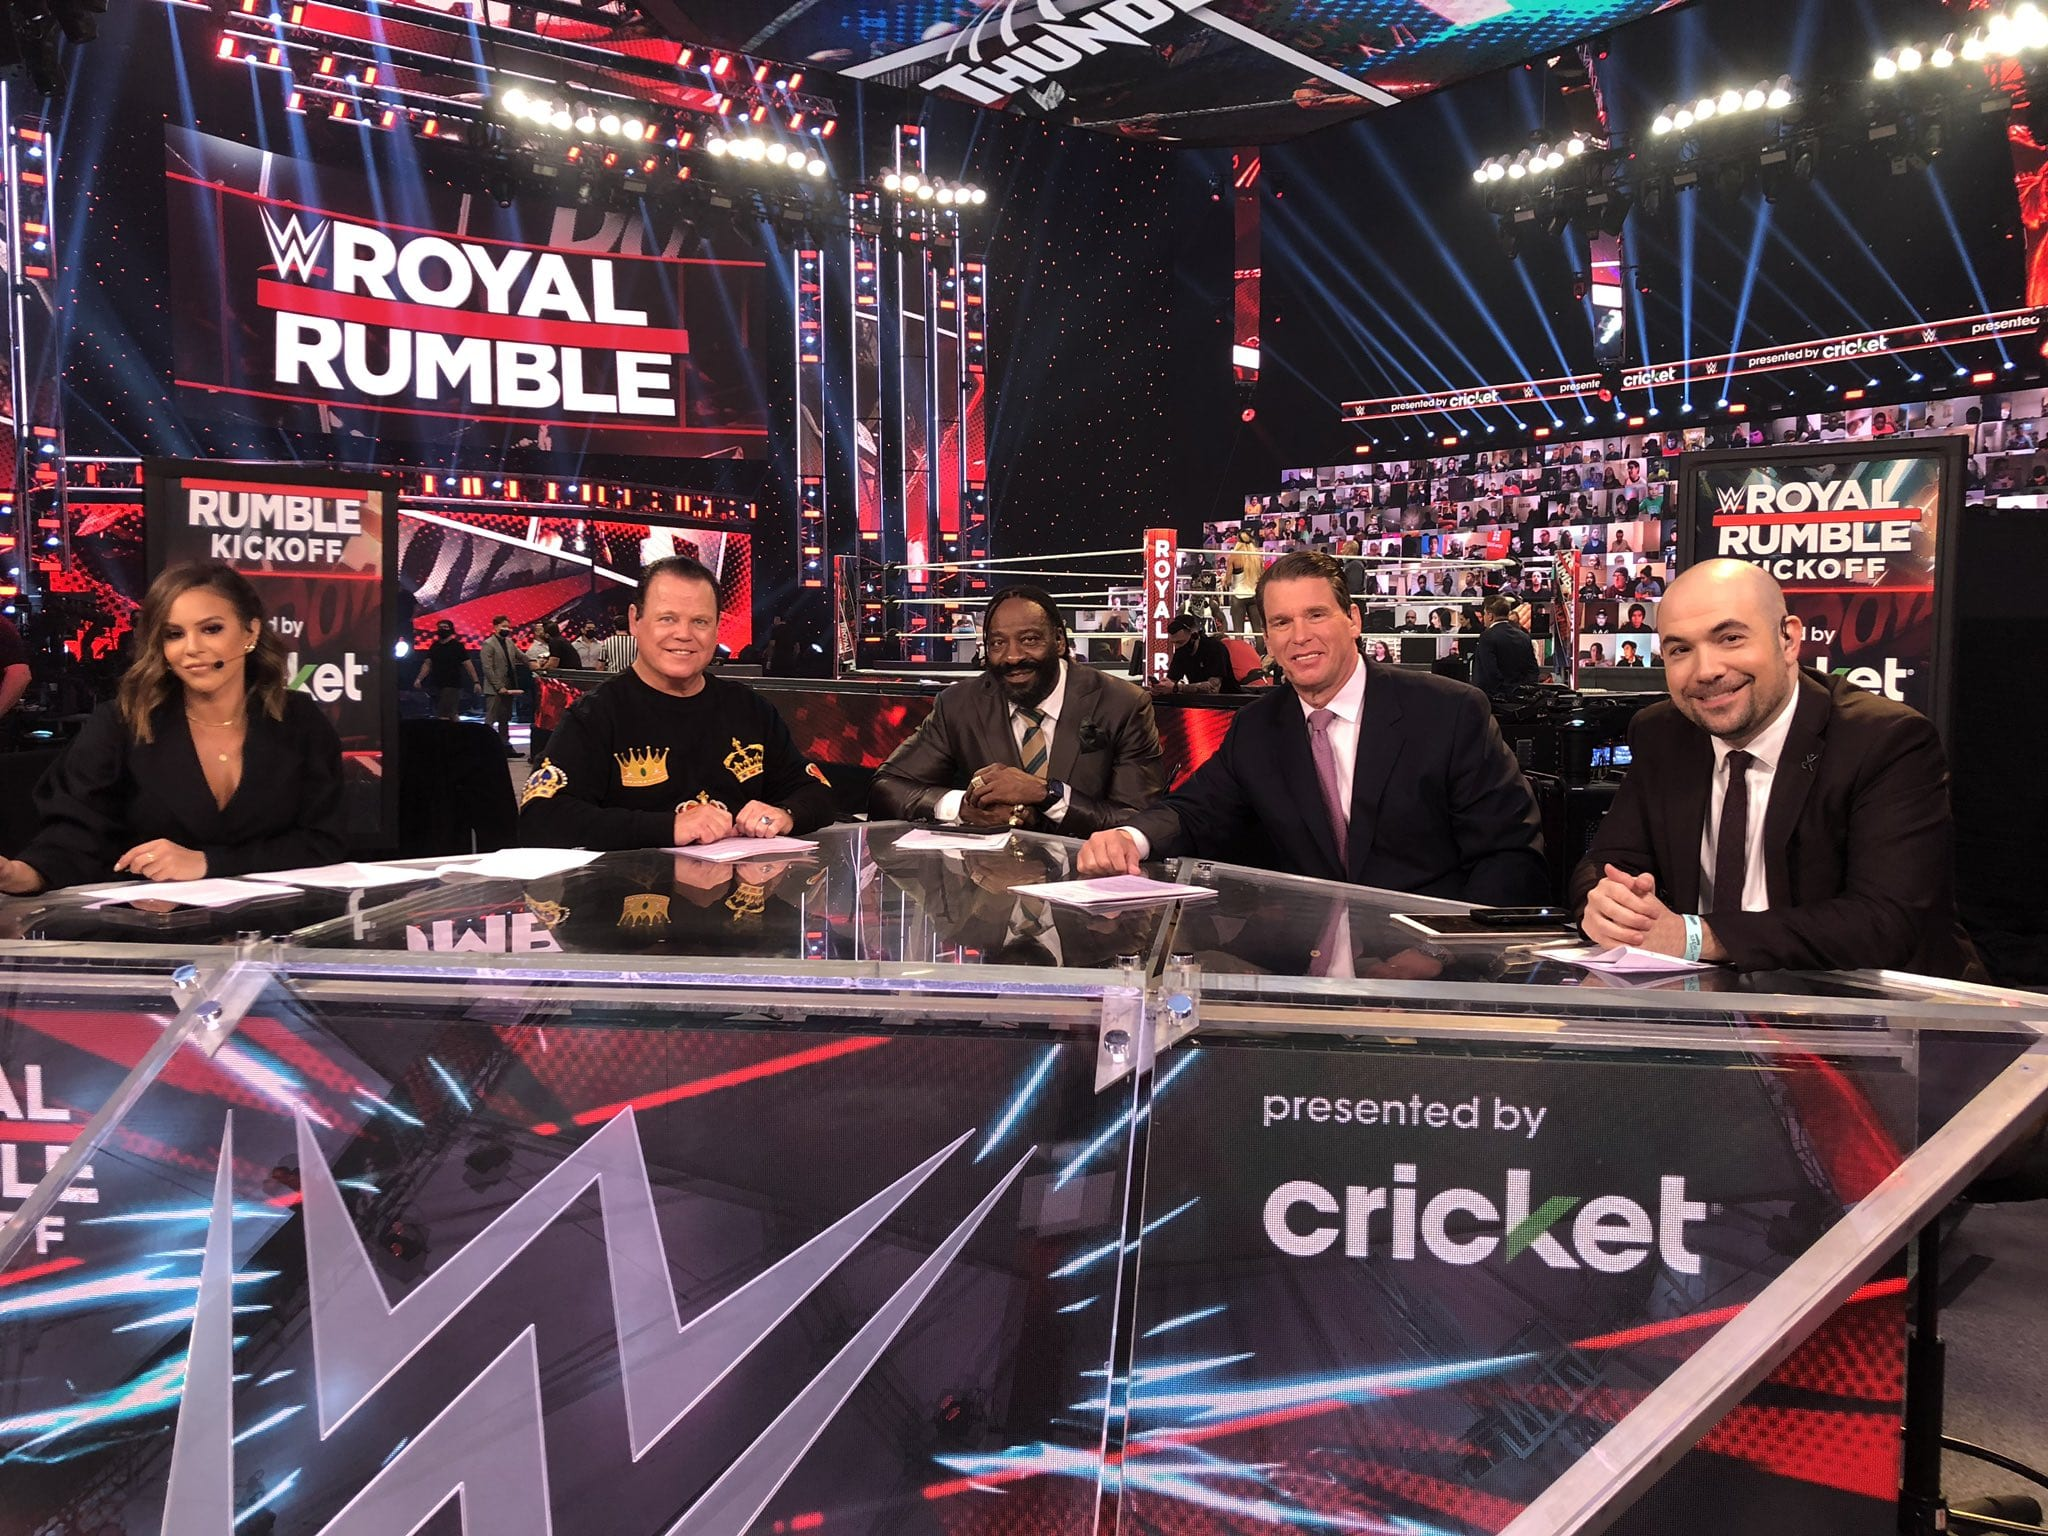 WWE Royal Rumble Kickoff Video, New Rumble Entrant Revealed